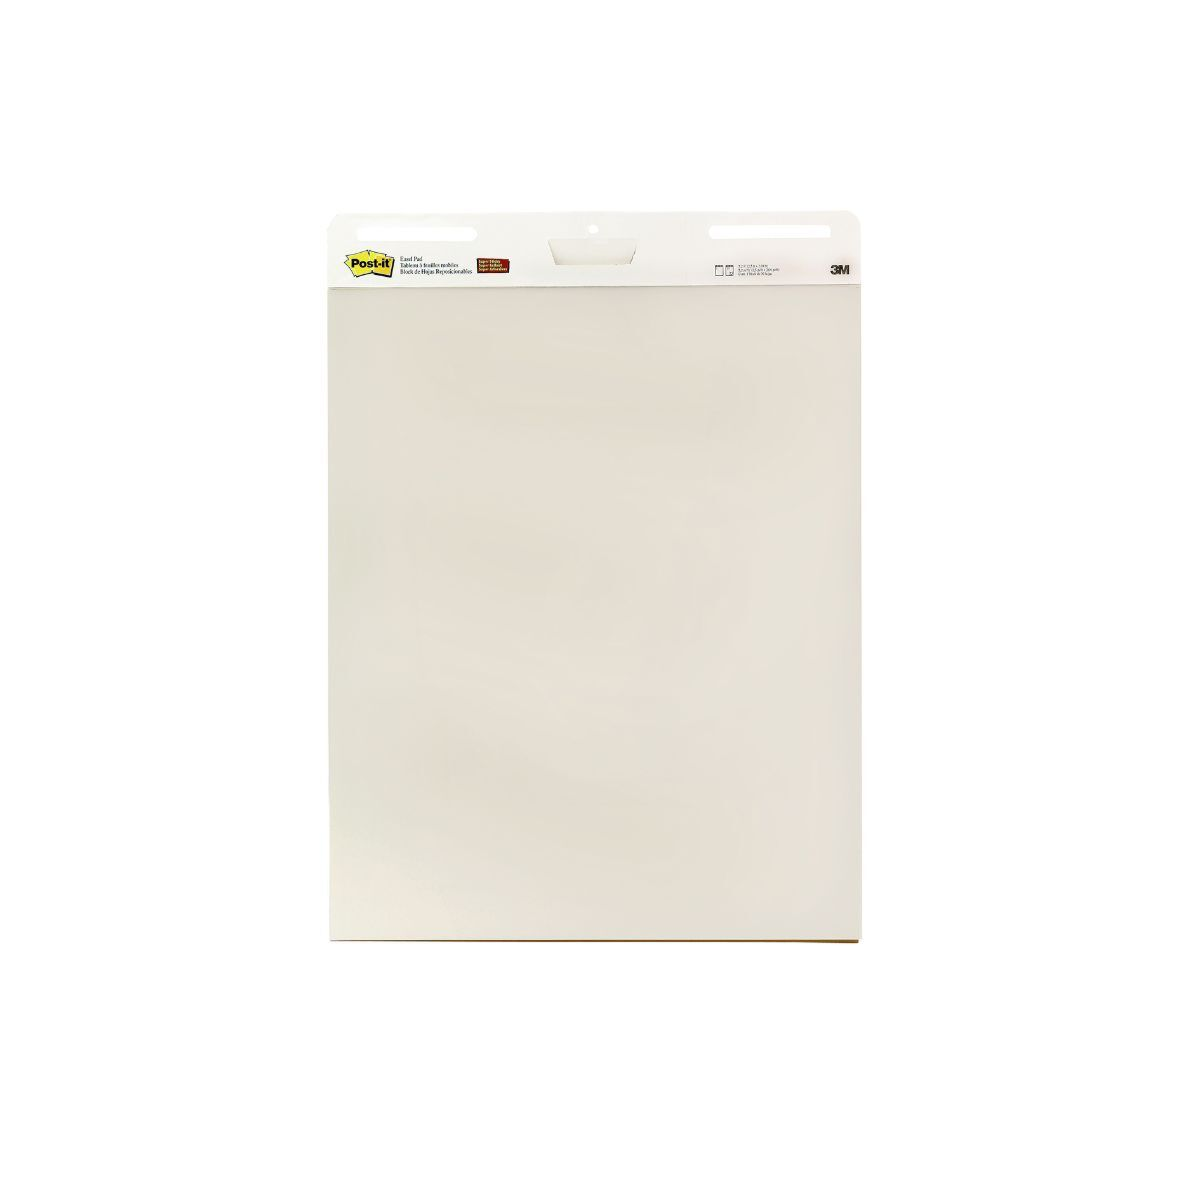 Post-it Meeting Chart Easel Pad Pack of 6